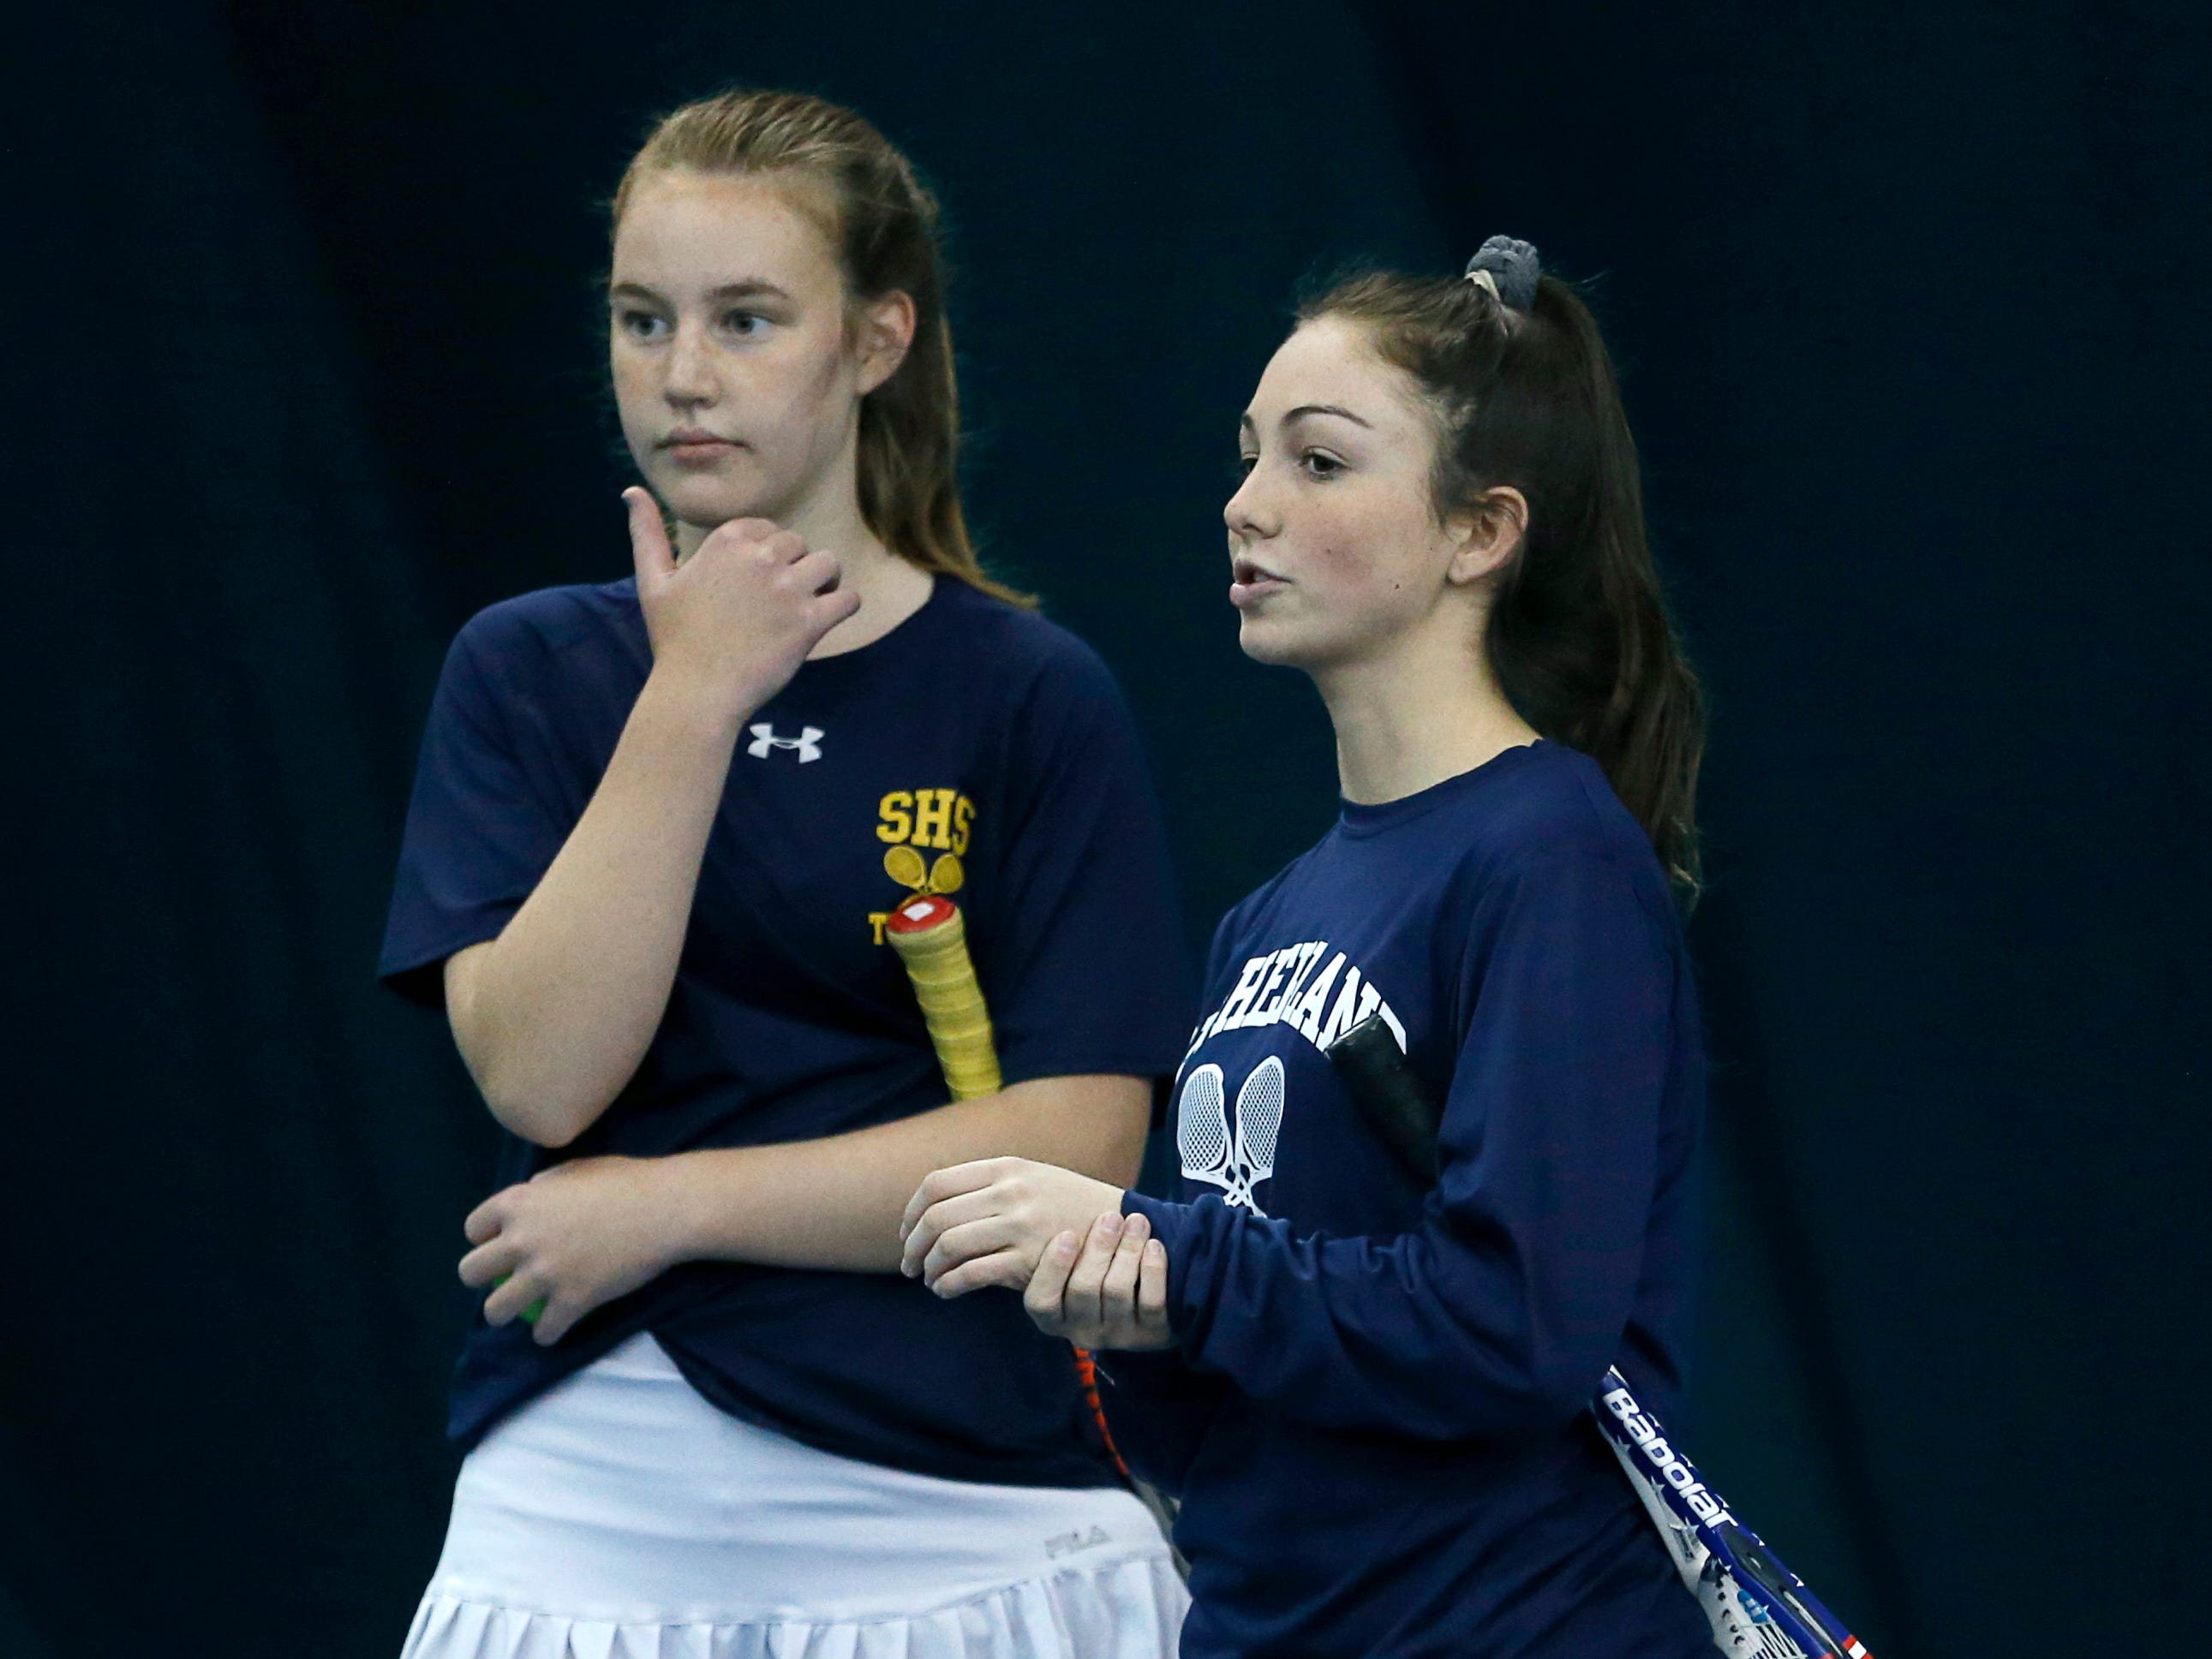 Pittsford Sutherland's Josie Libby and Gwenneth Mattia strategize during the doubles final of the Section V Tennis State Qualifiers at Mendon Racquet & Pool Club.